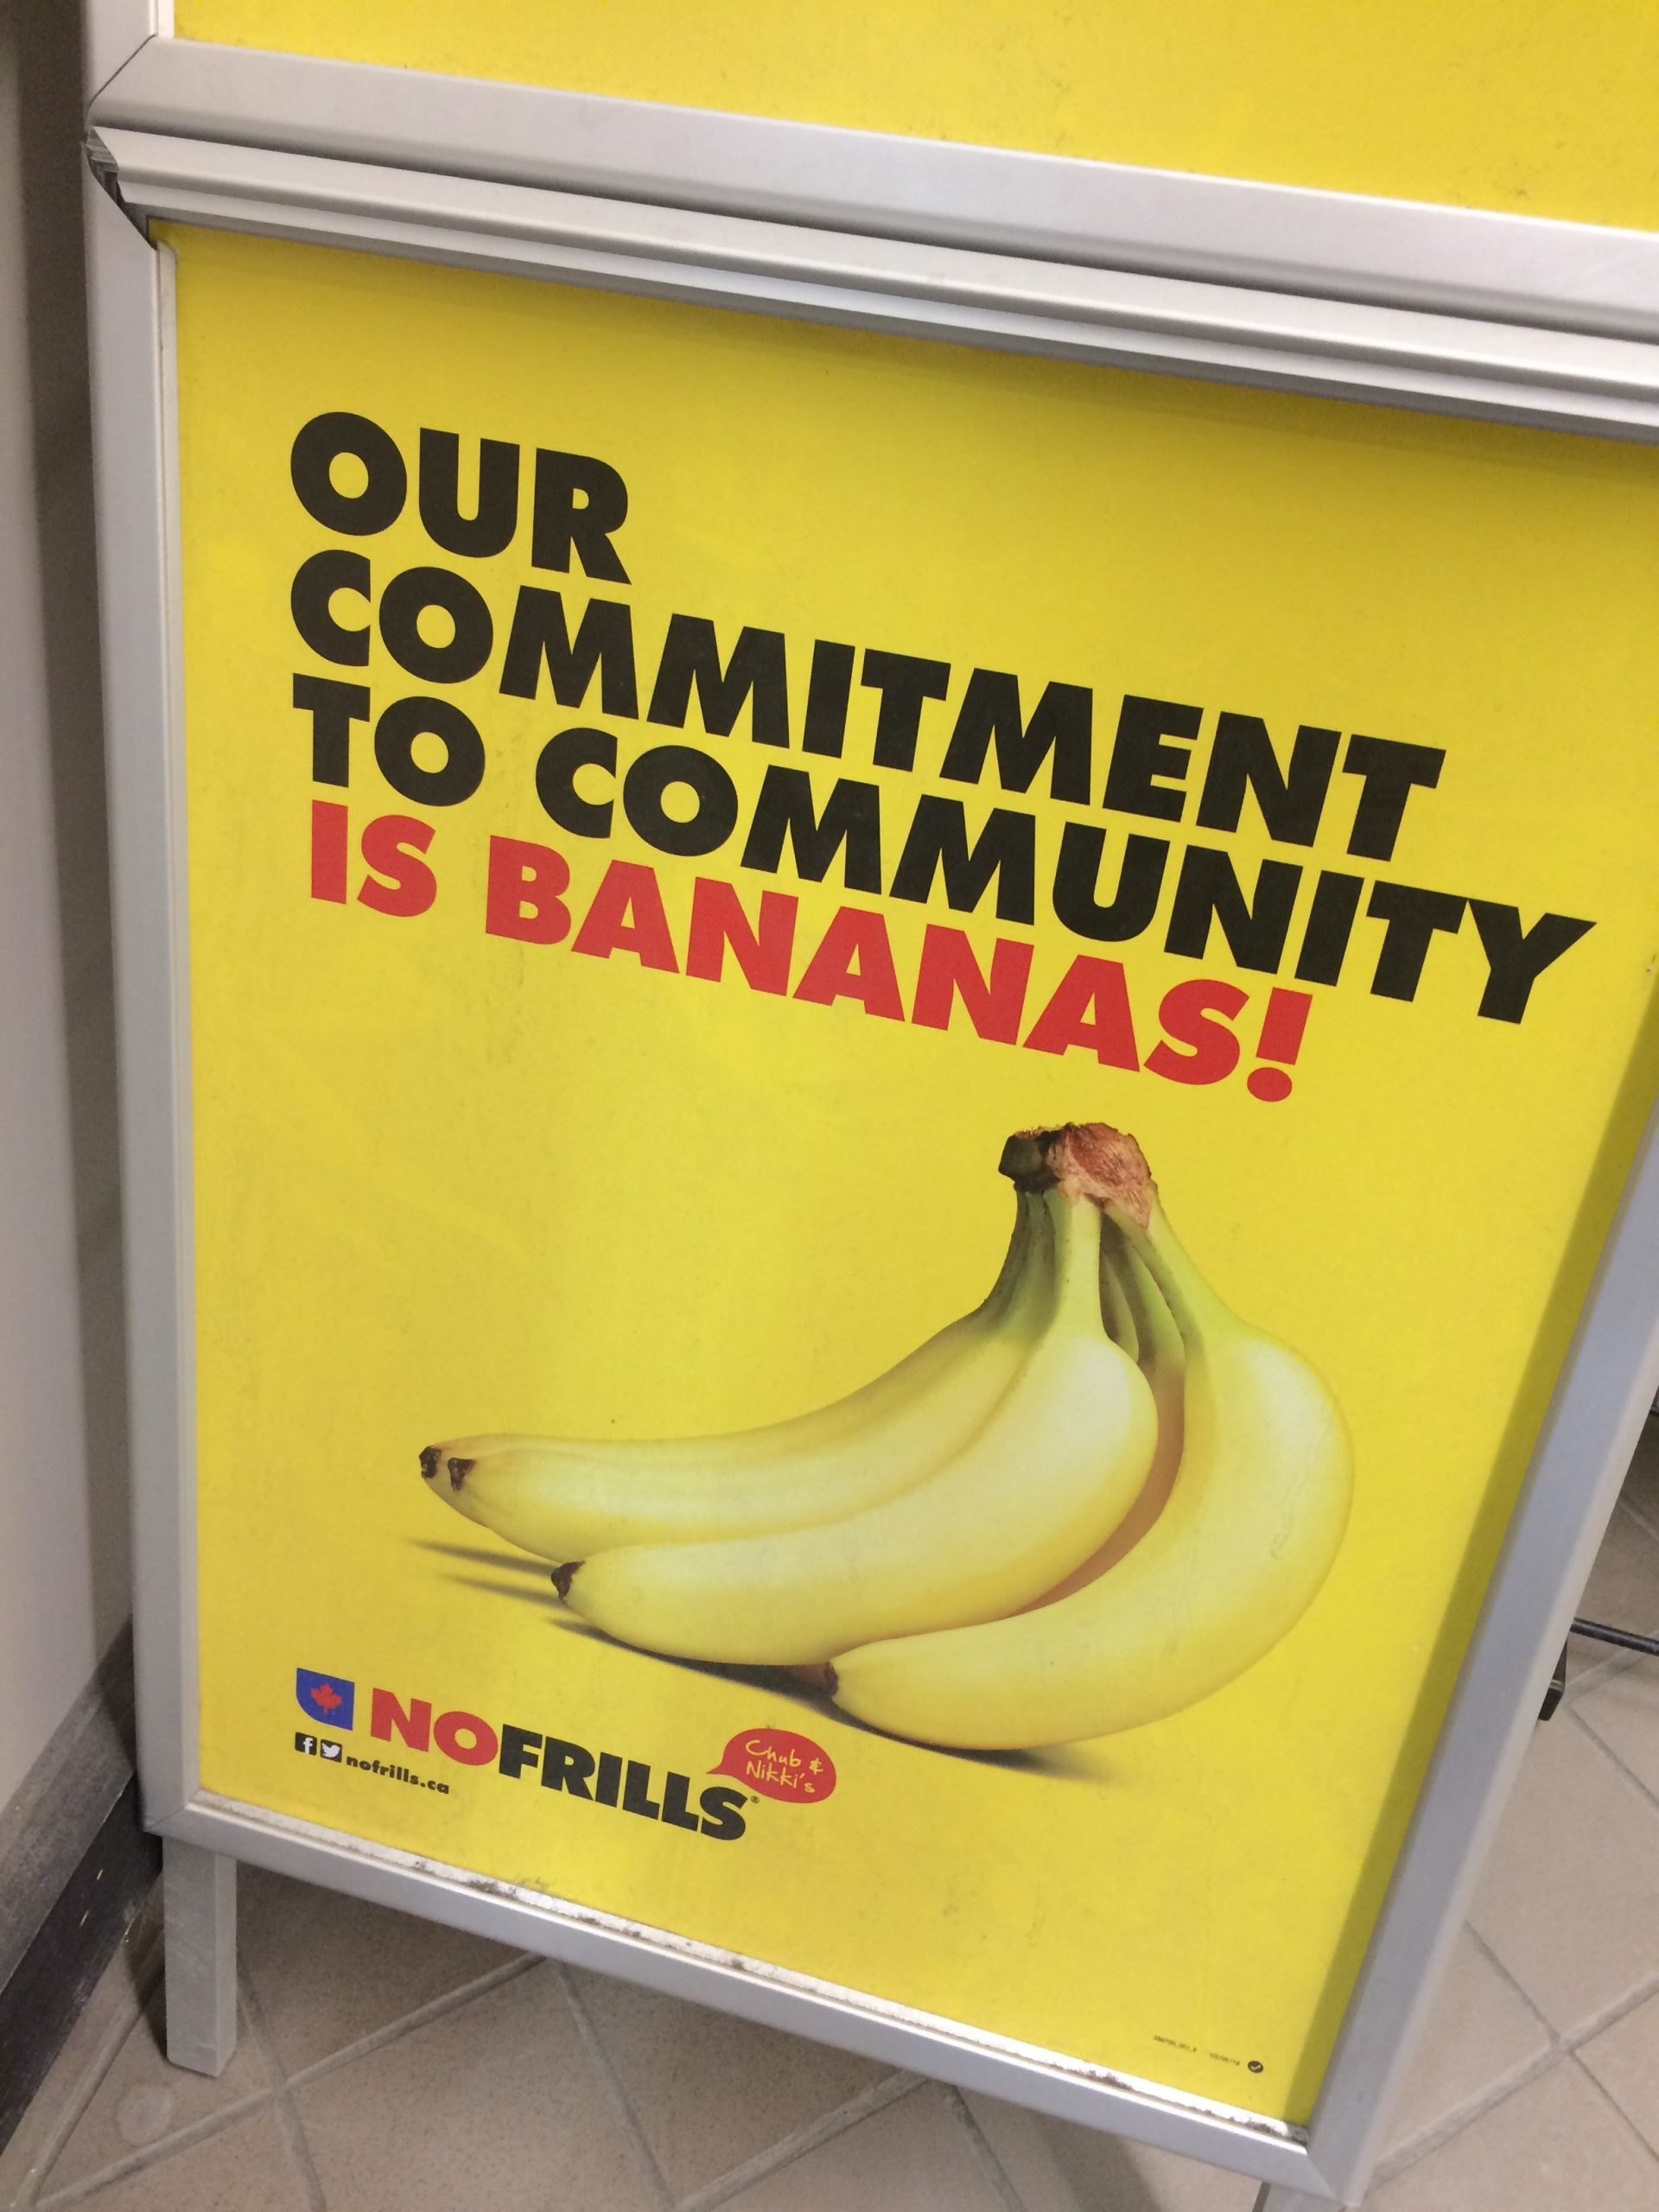 A Letter To No Frills About Offensive Ad – Teaching The No Frills Calendar